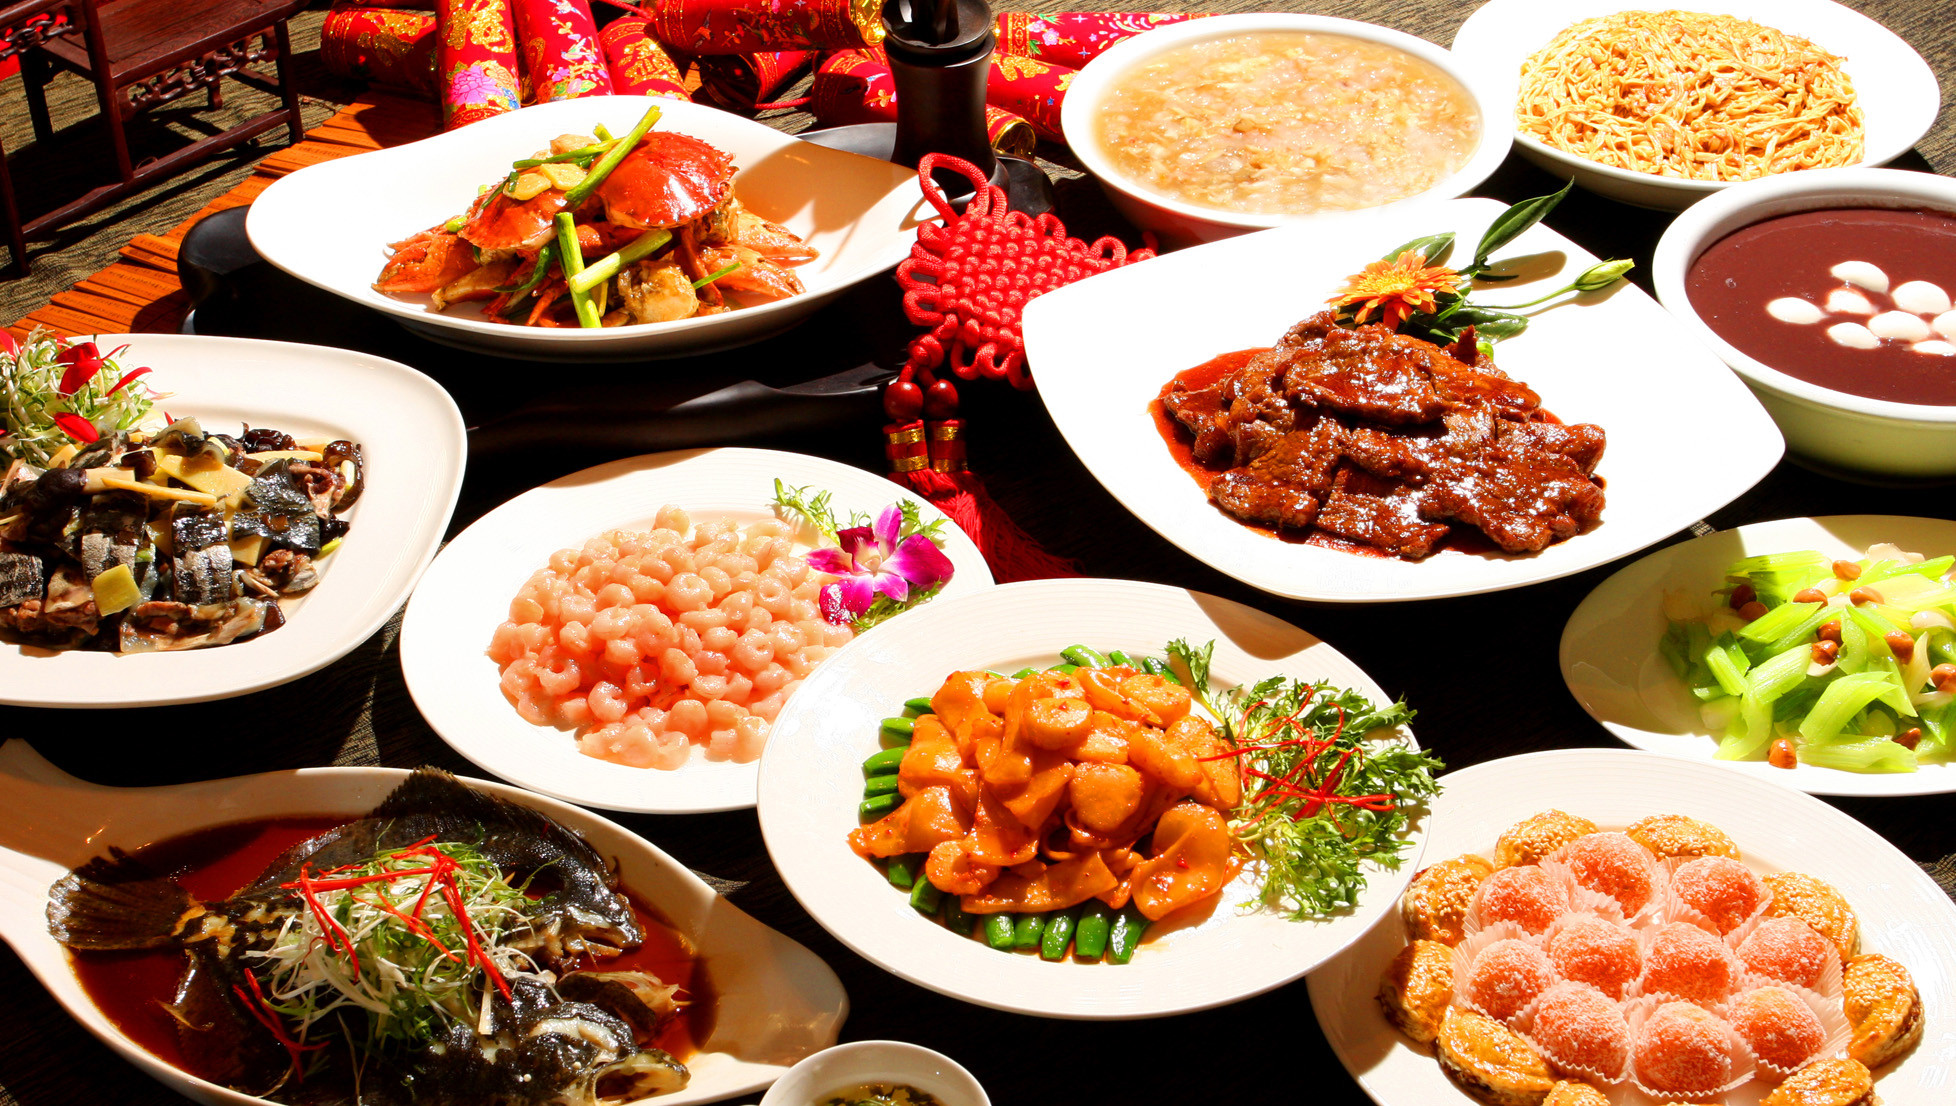 Chinese New Year Dinner  How To Celebrate Chinese New Year When You Aren't In China